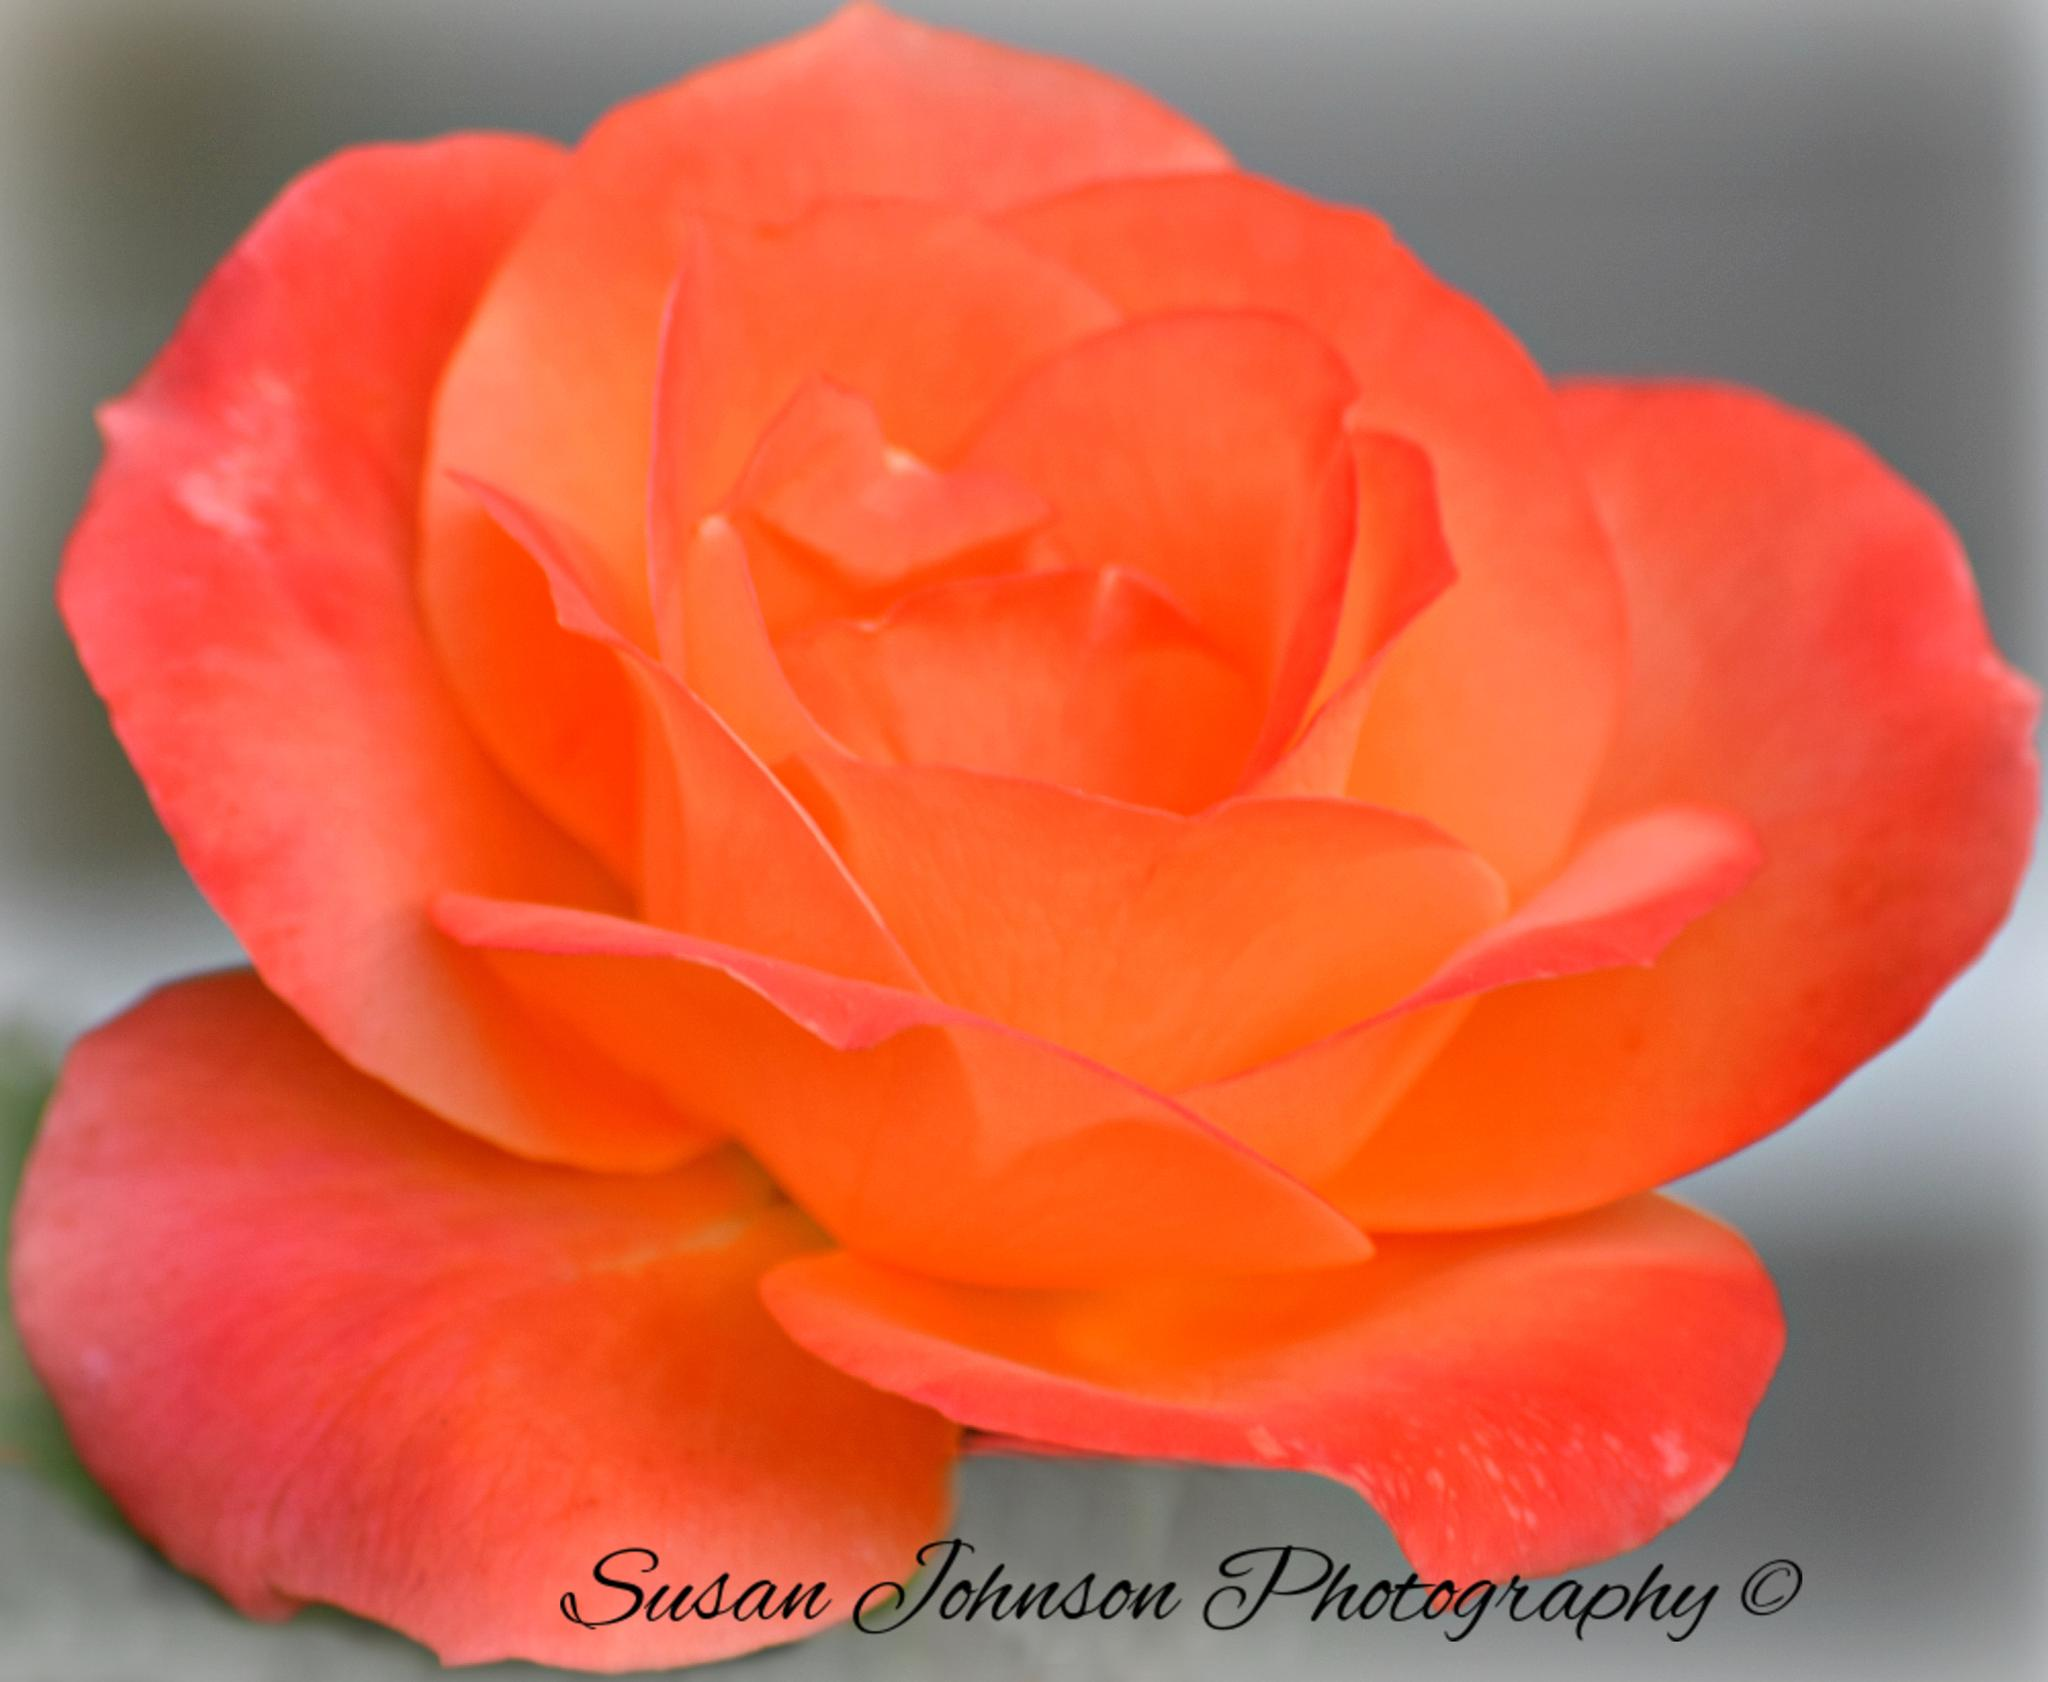 Untitled by Susan Johnson